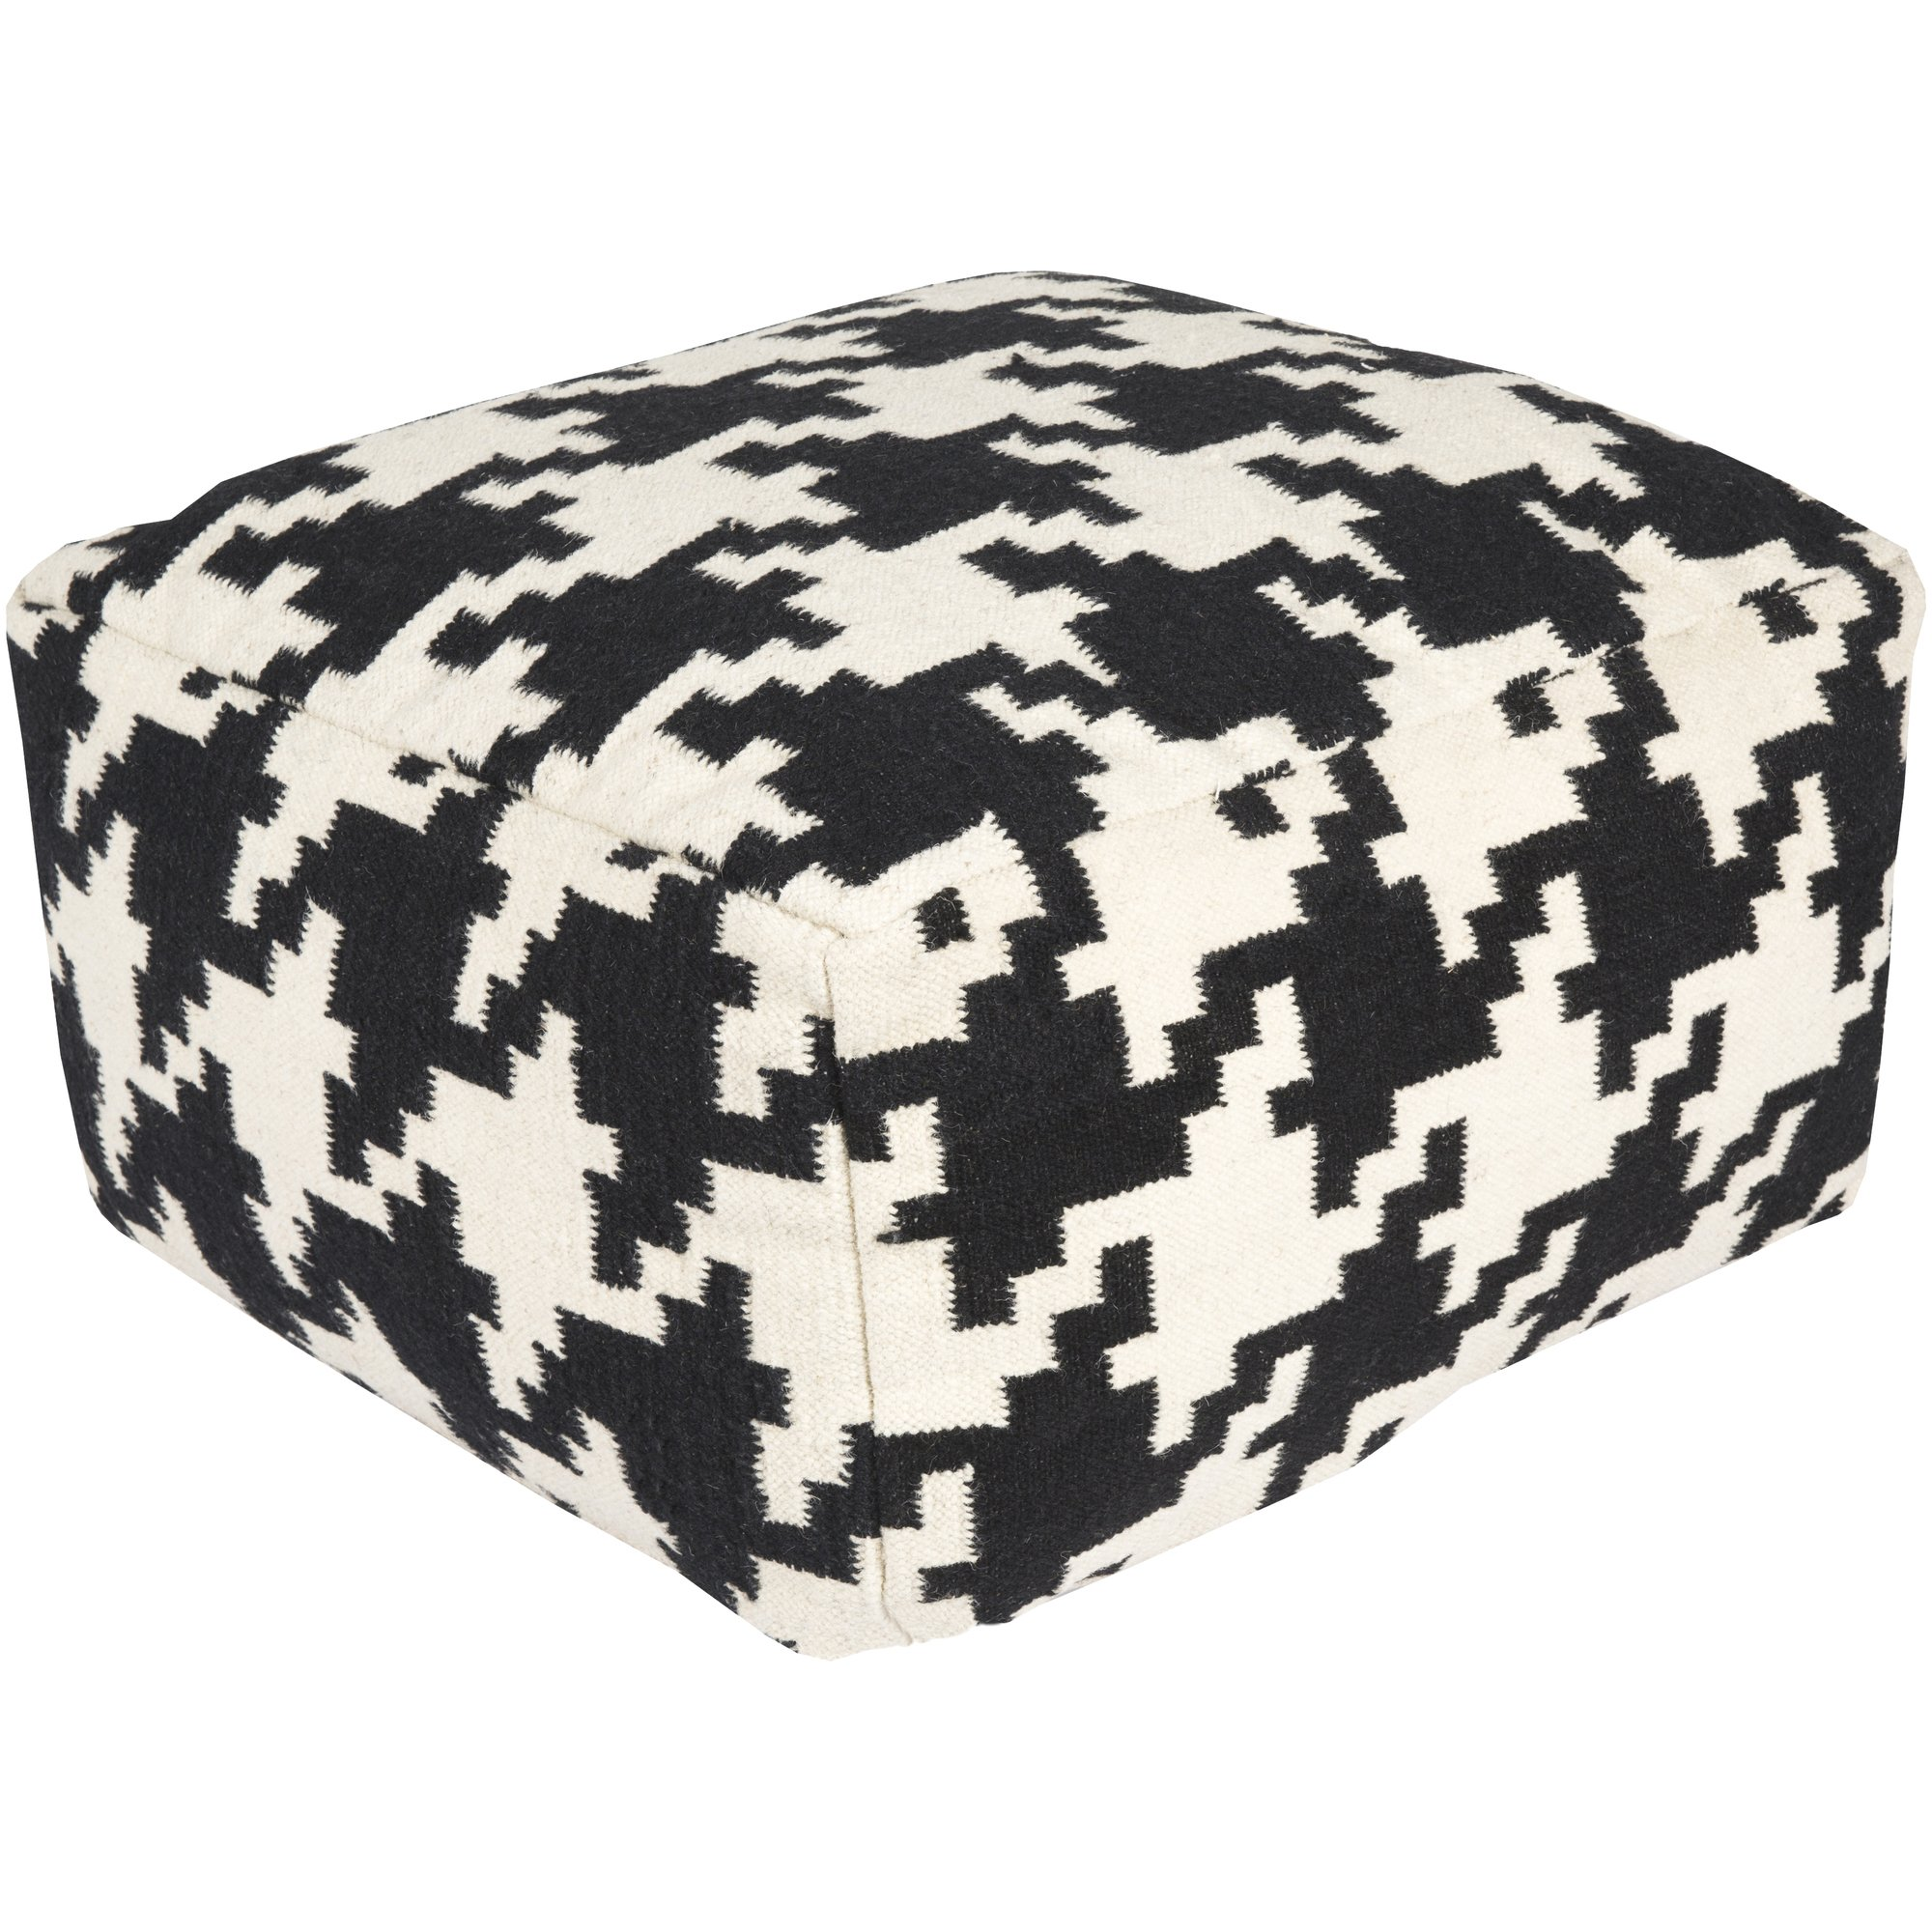 Surya POUF173-242413 100-Percent Wool Pouf, 24-Inch by 24-Inch by 13-Inch, Black/Ivory by Surya (Image #1)